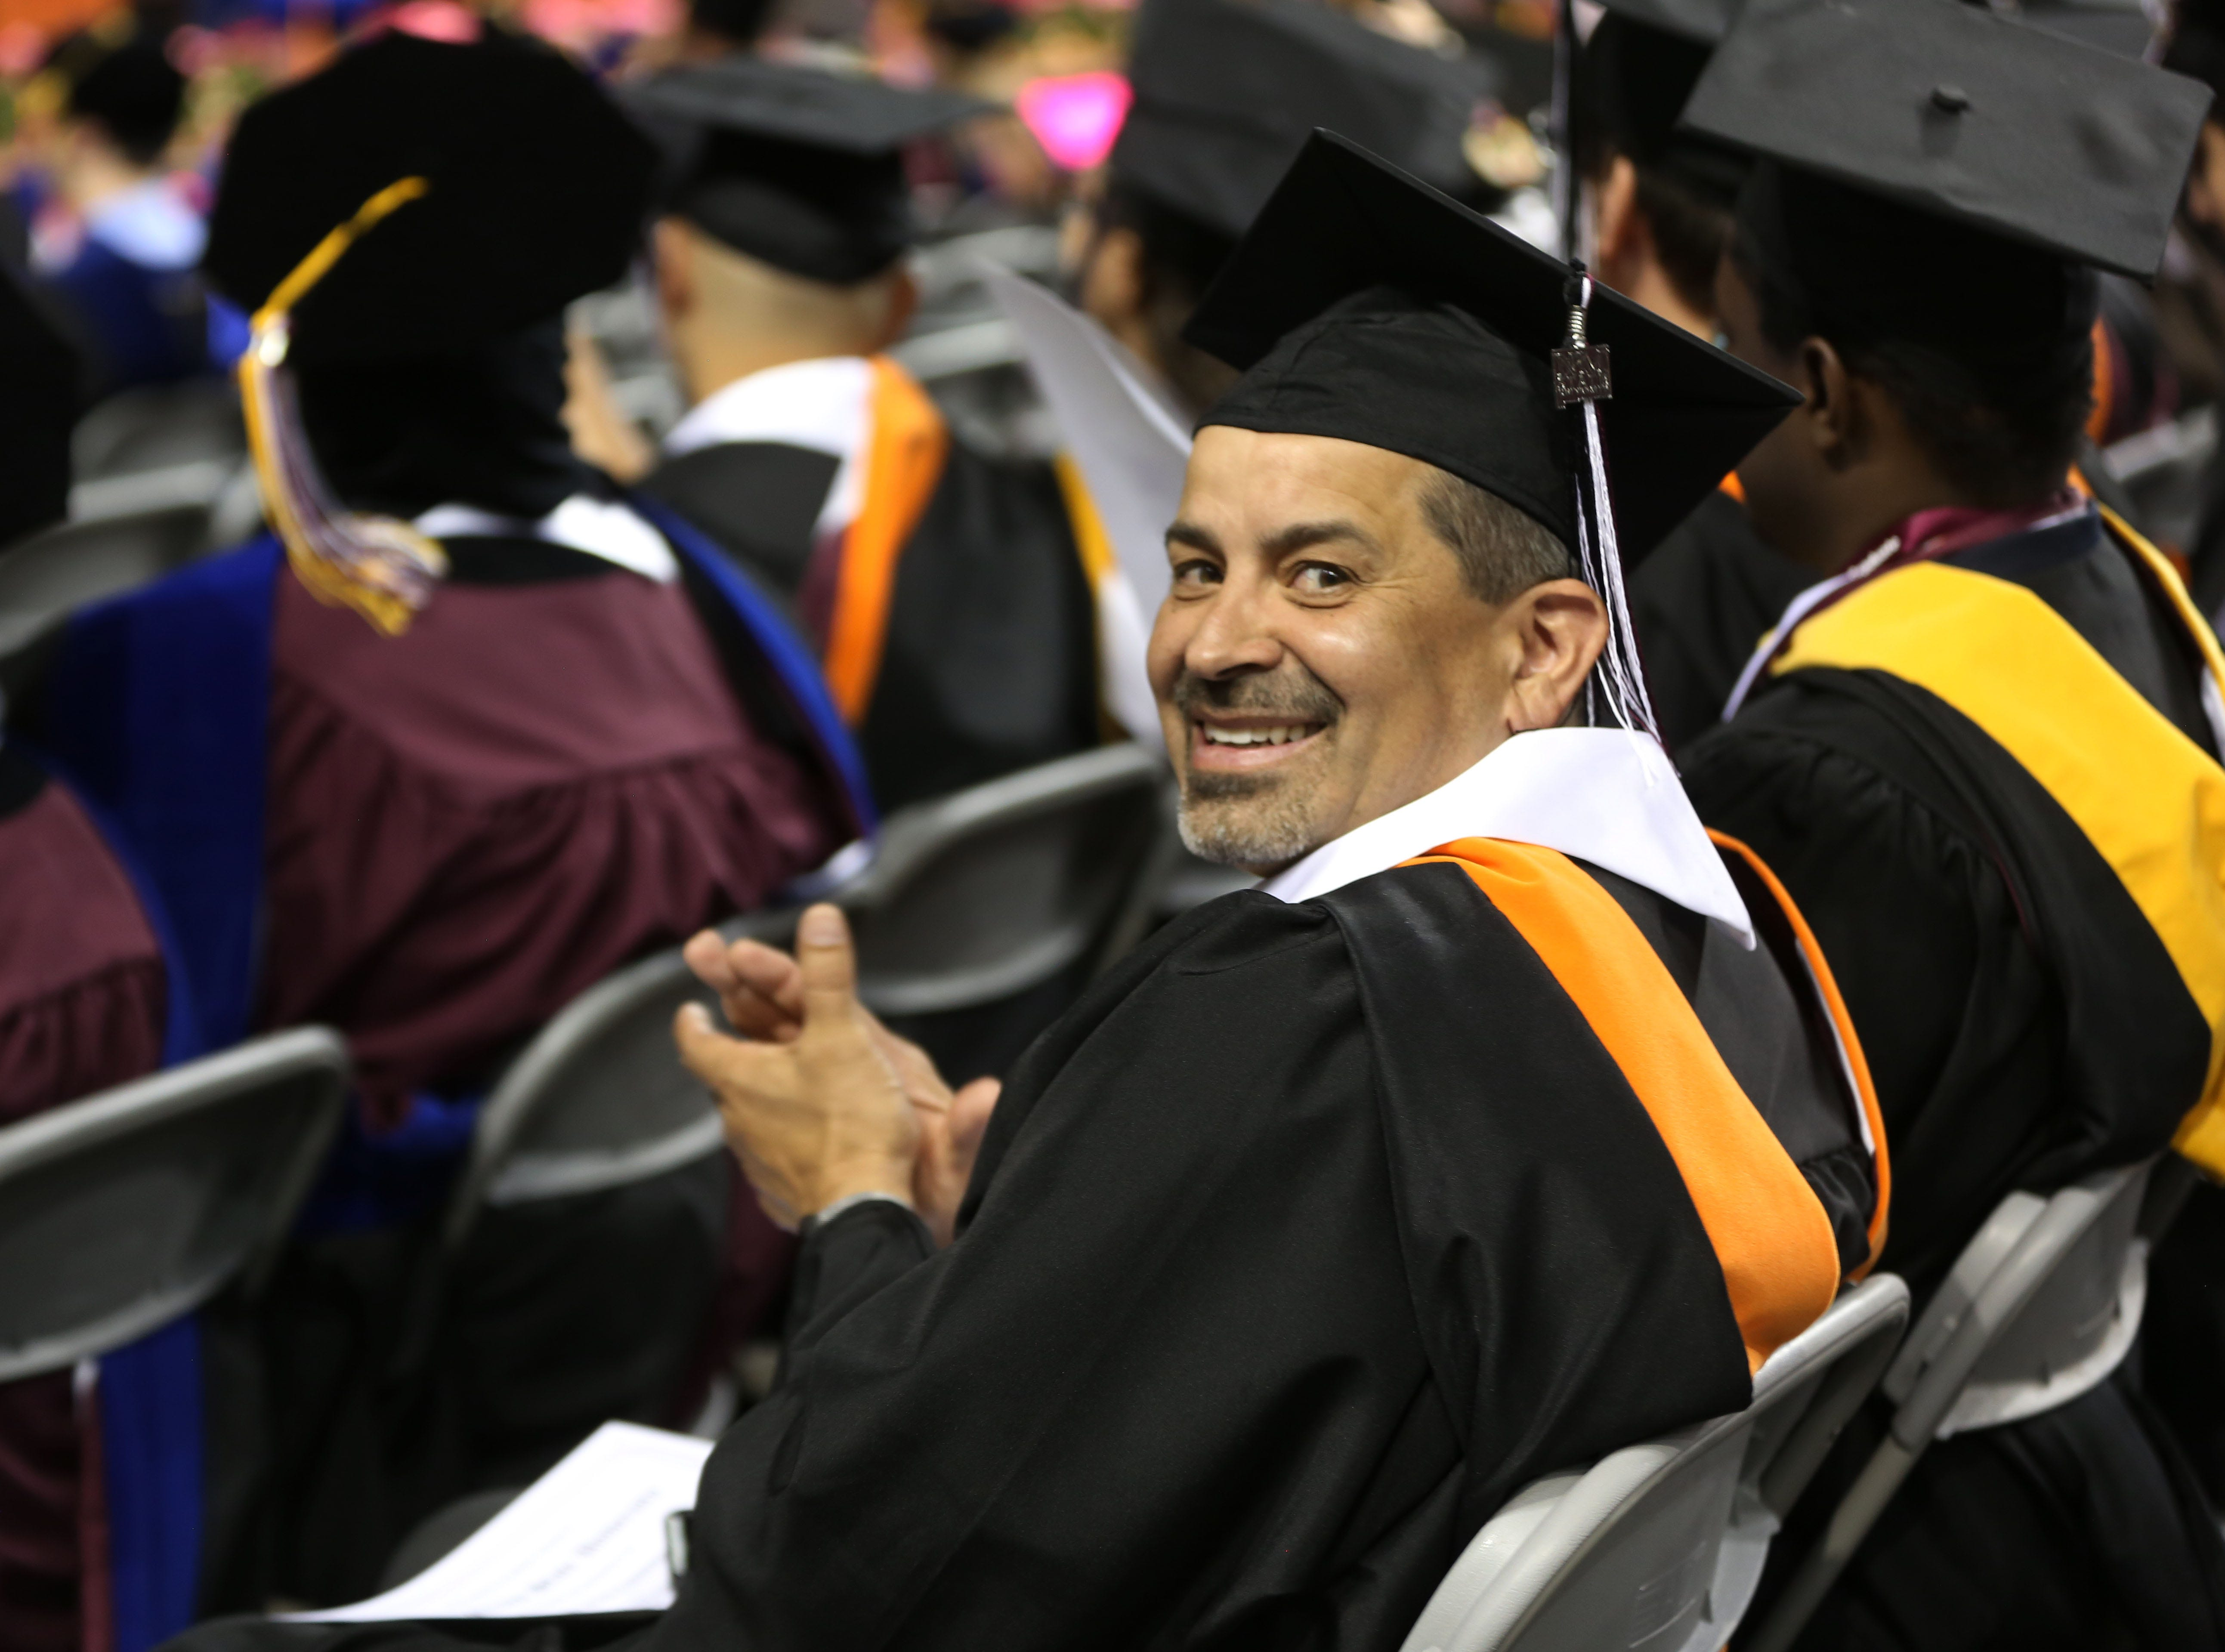 A New Mexico State University student smiles, after receiving his degree at a commencement ceremony, Saturday May 11, 2019.